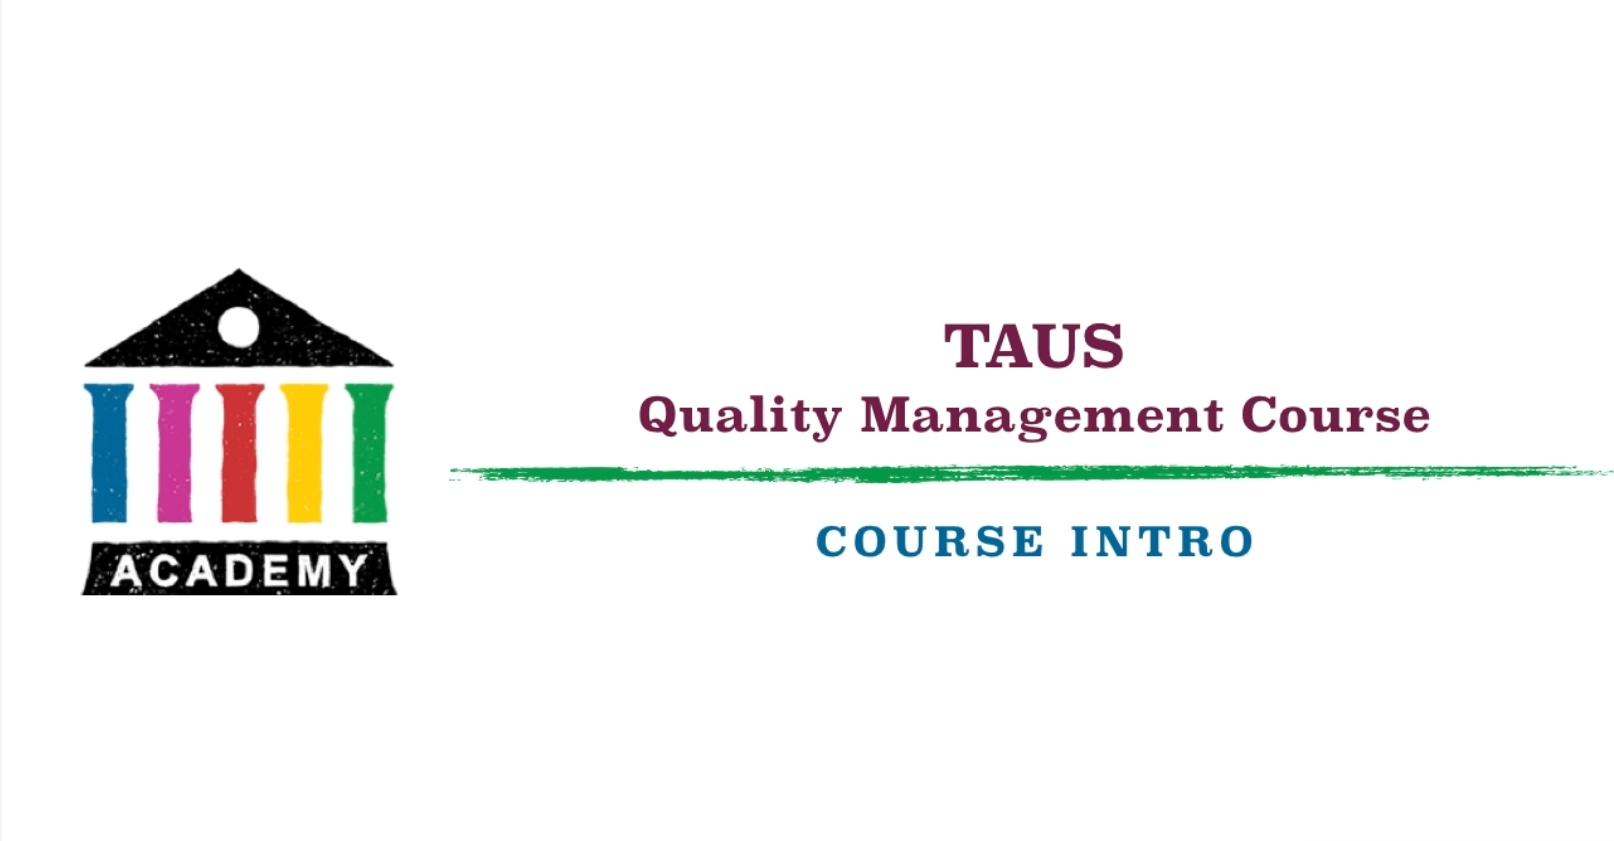 Quality Management Course Taus The Language Data Network